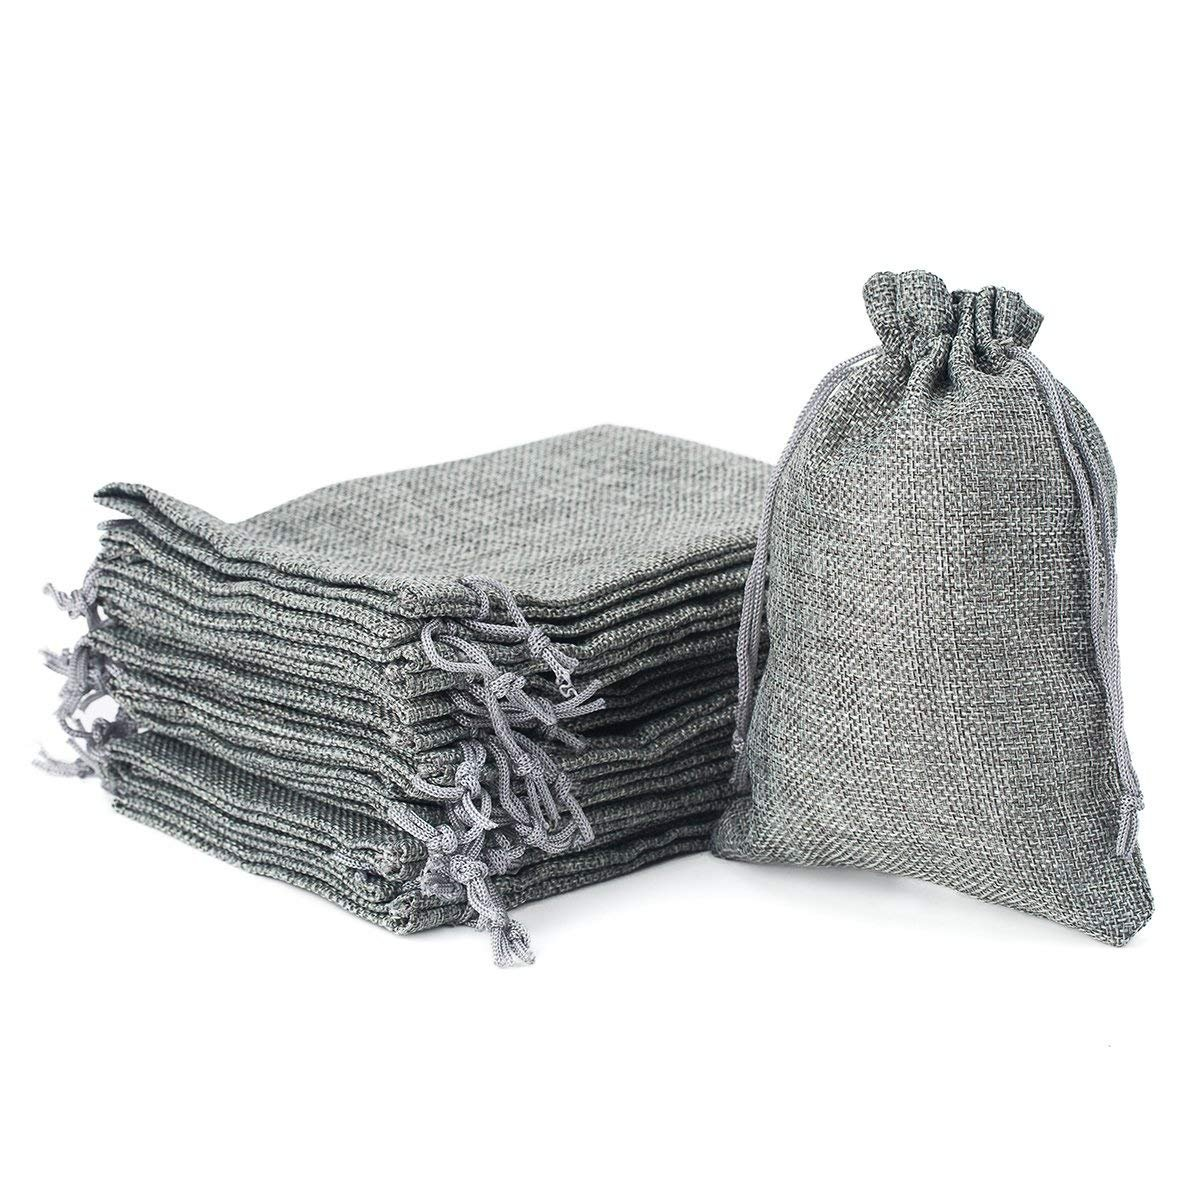 Wuligirl 30PCS Burlap Bags 4X6 with Drawstring and Cotton Lining Jewelry Pouches Sacks Bag for Wedding Favors, Party, DIY Craft(Burlap Grey)